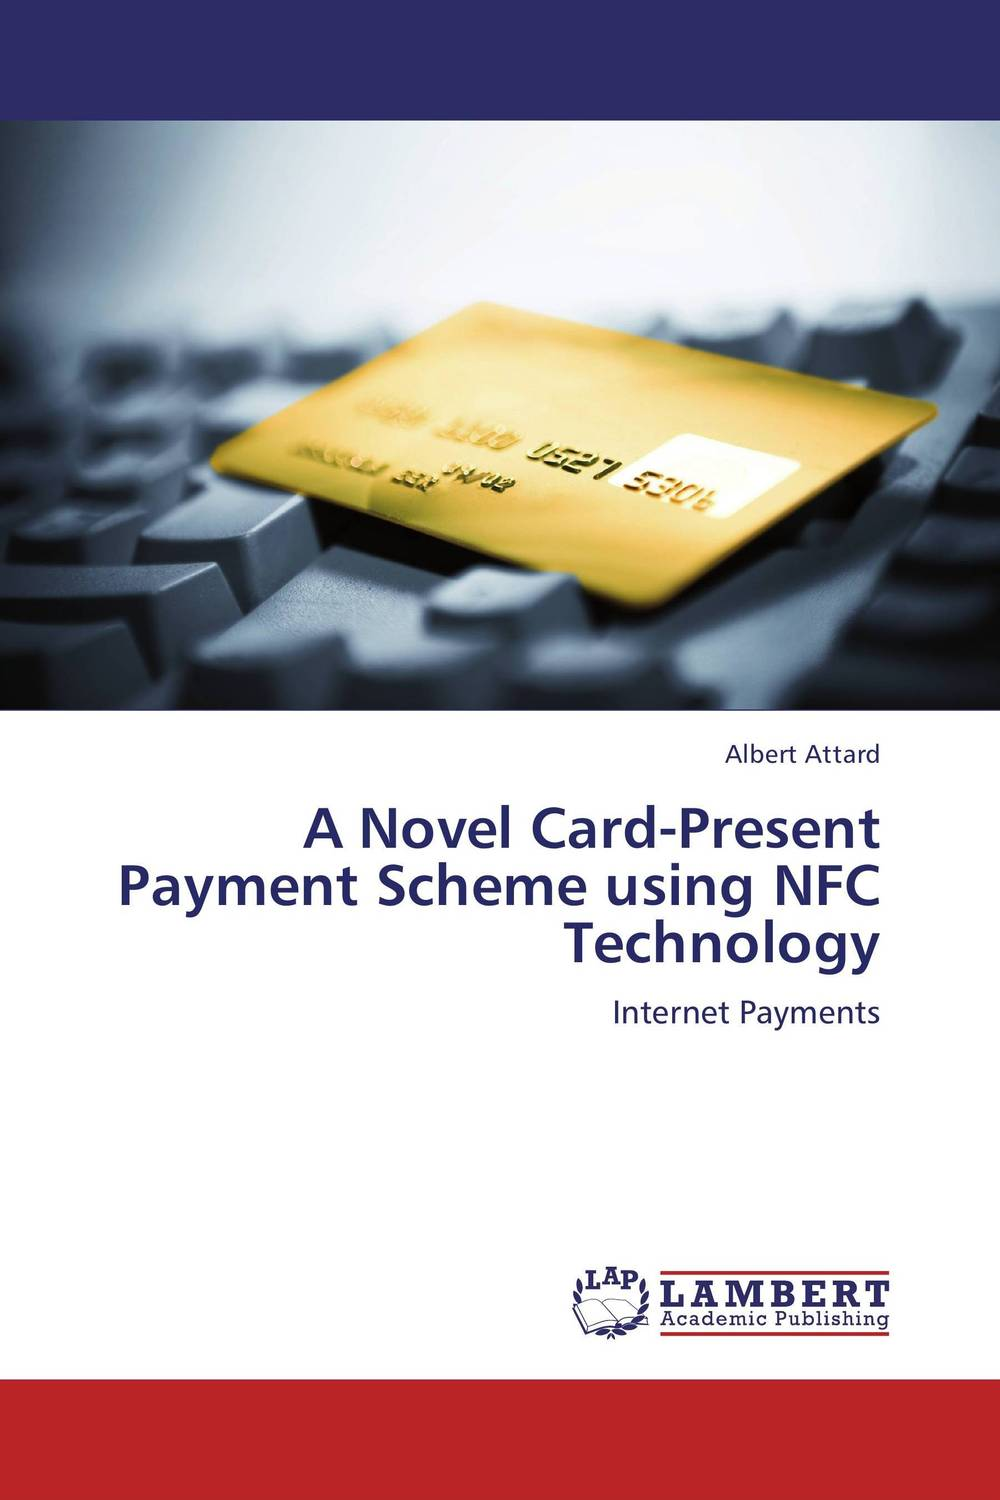 A Novel Card-Present Payment Scheme using NFC Technology the lonely polygamist – a novel